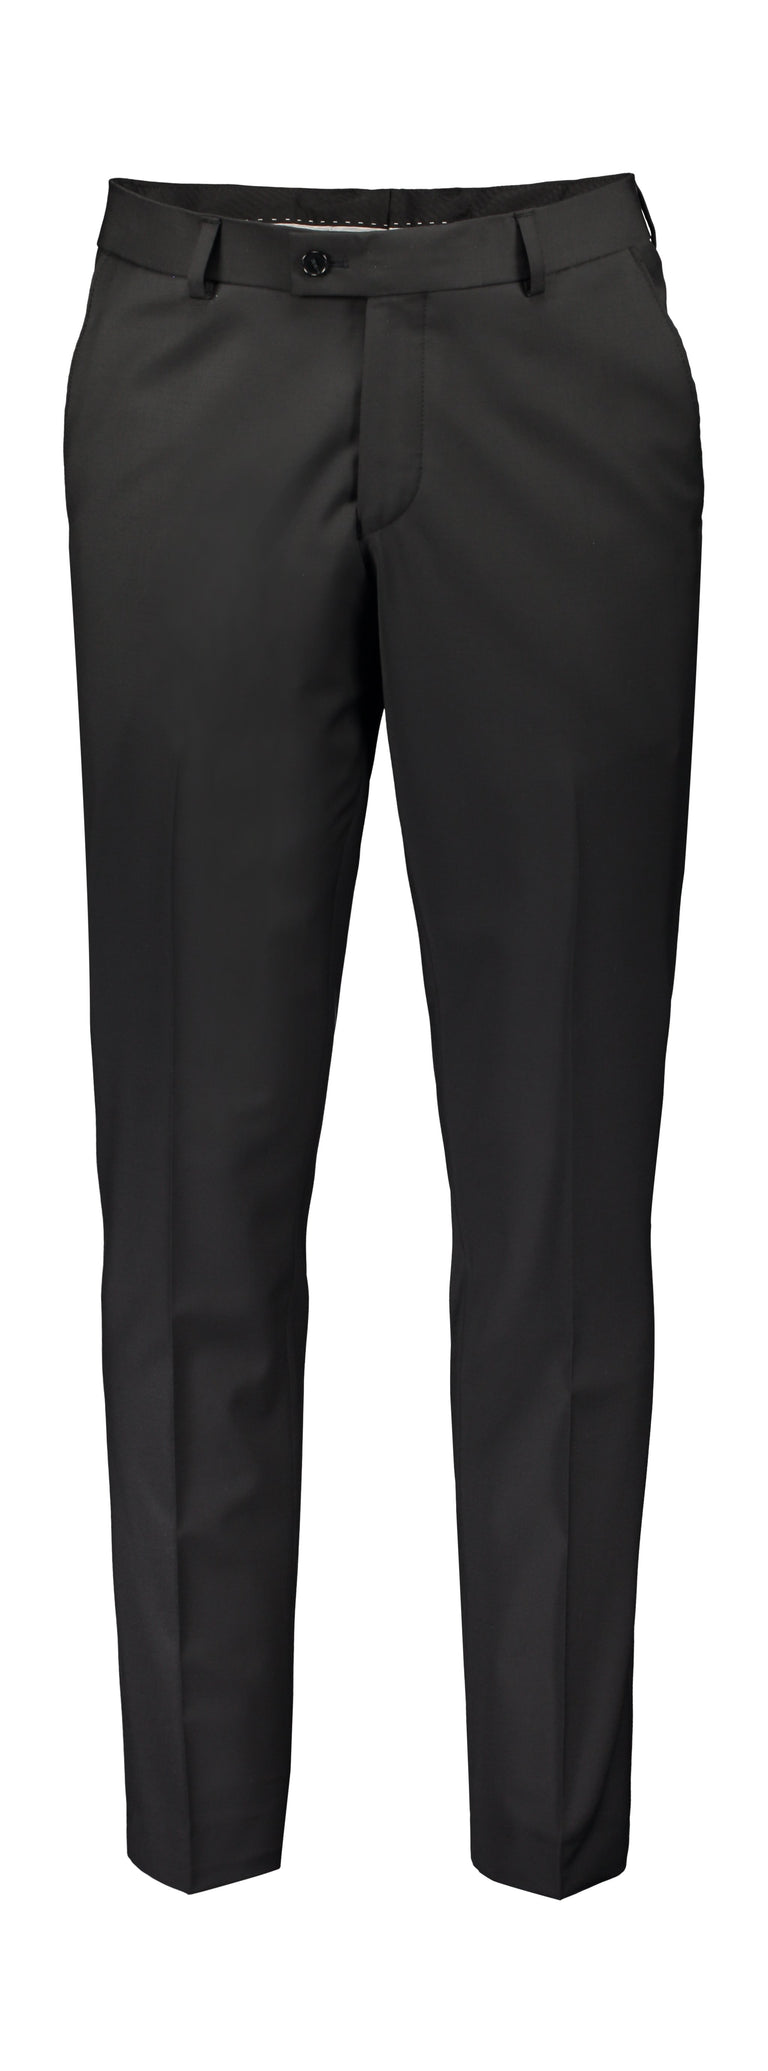 Extra slim fit trousers black